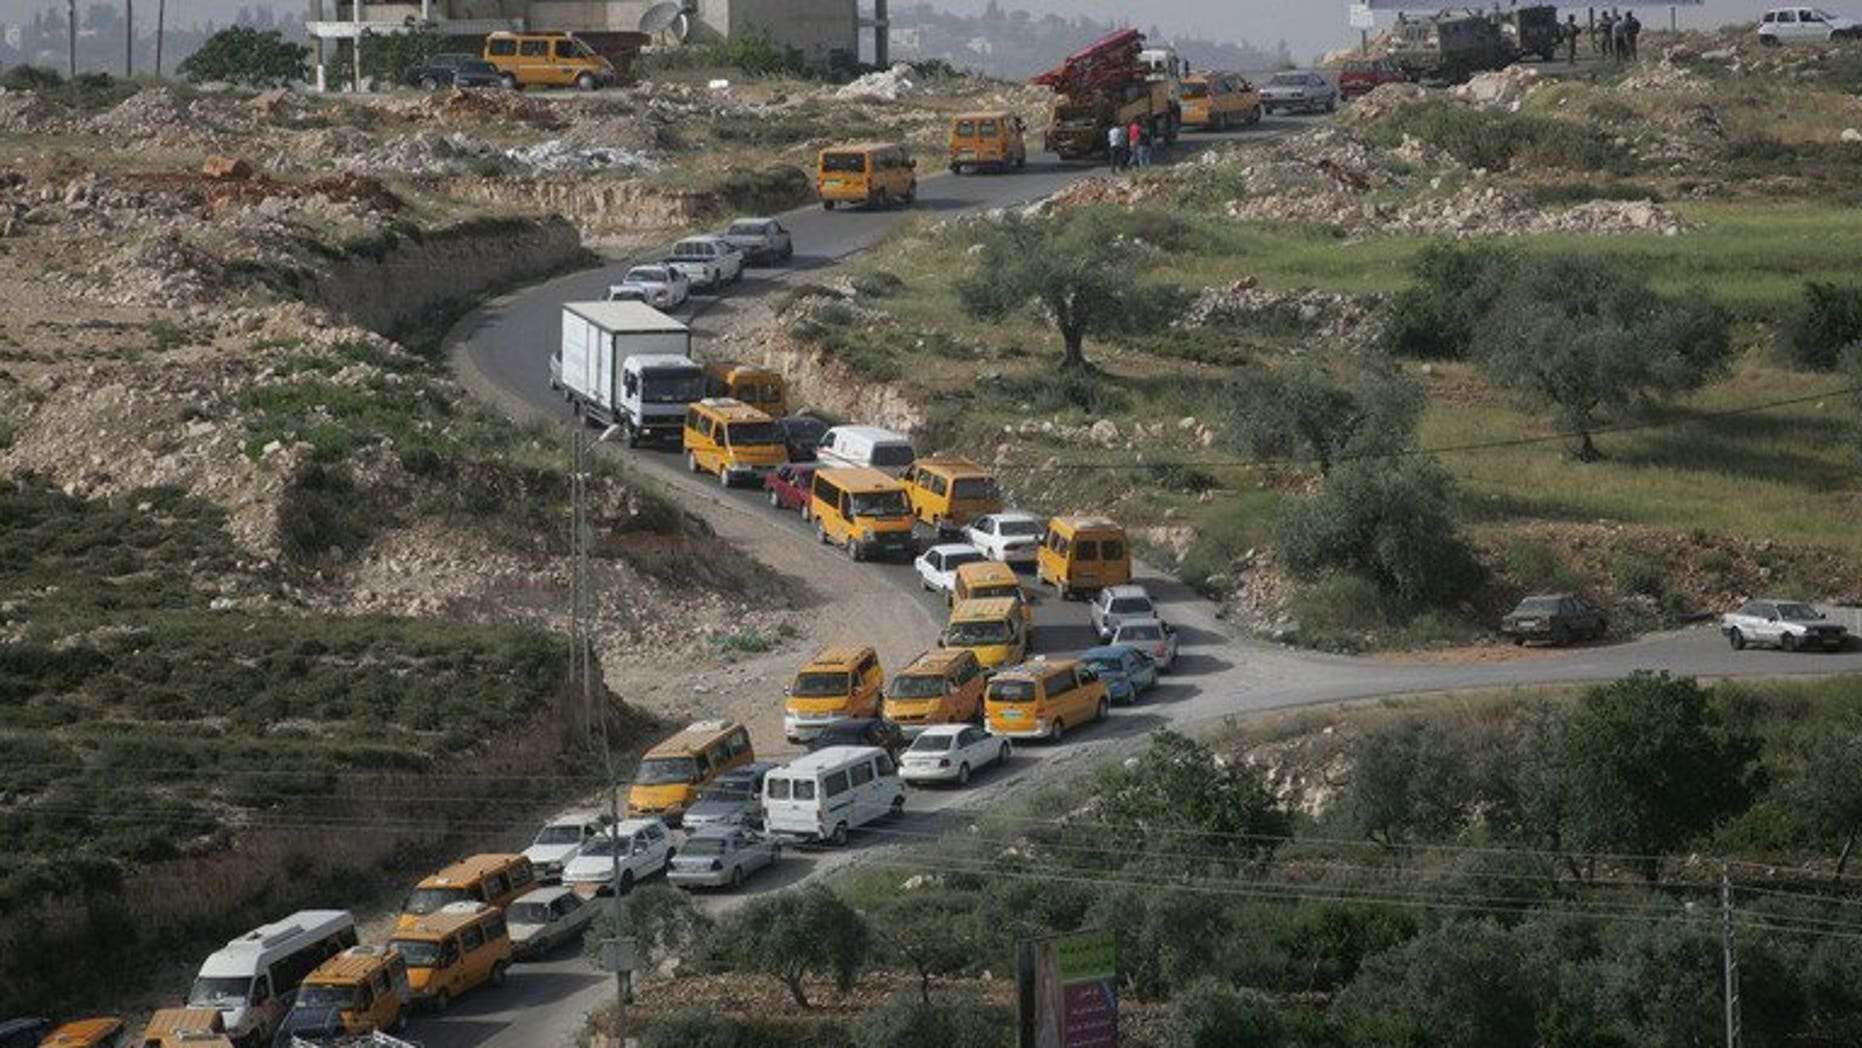 Palestinian vehicles are stuck in traffic on the main road linking the West Bank city of Ramallah with the nearby town of al-Bireh after Israeli troops forced hundreds of motorists to queue for ID checks on April 23, 2008. The Israeli military is preparing to lift some restrictions on Palestinian movement in advance of possible renewed peace talks, according to army radio.